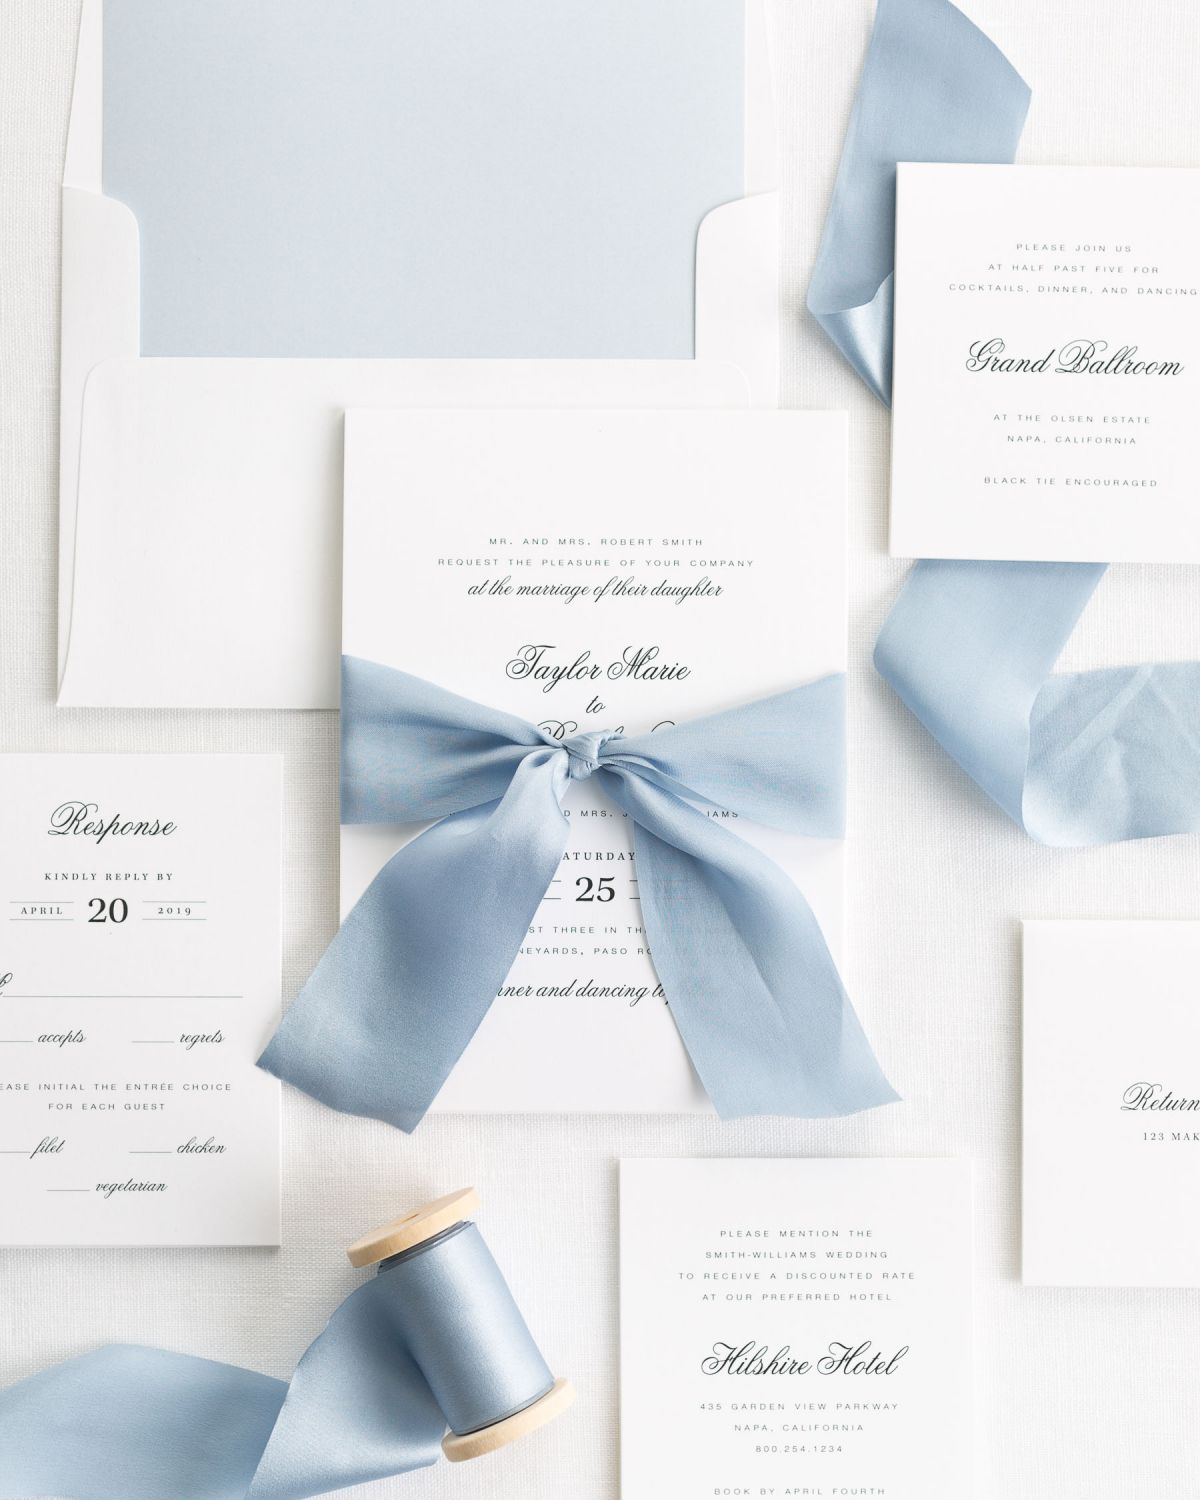 Complete Wedding Invitation Package with Blue Ribbon and Enclosures